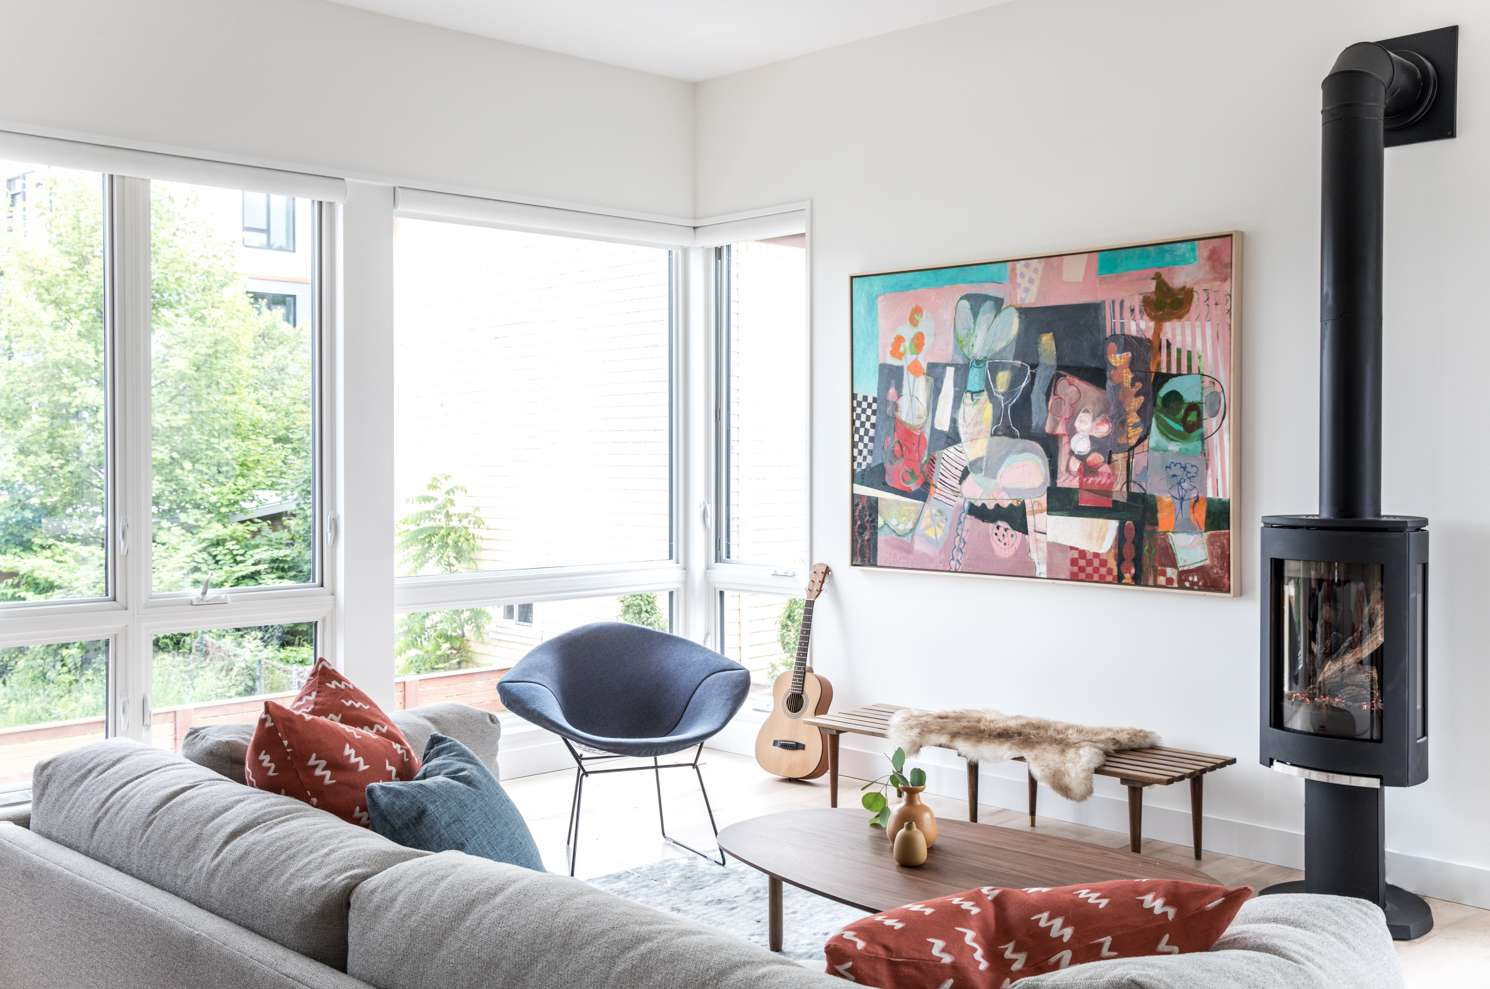 White and art filled living room